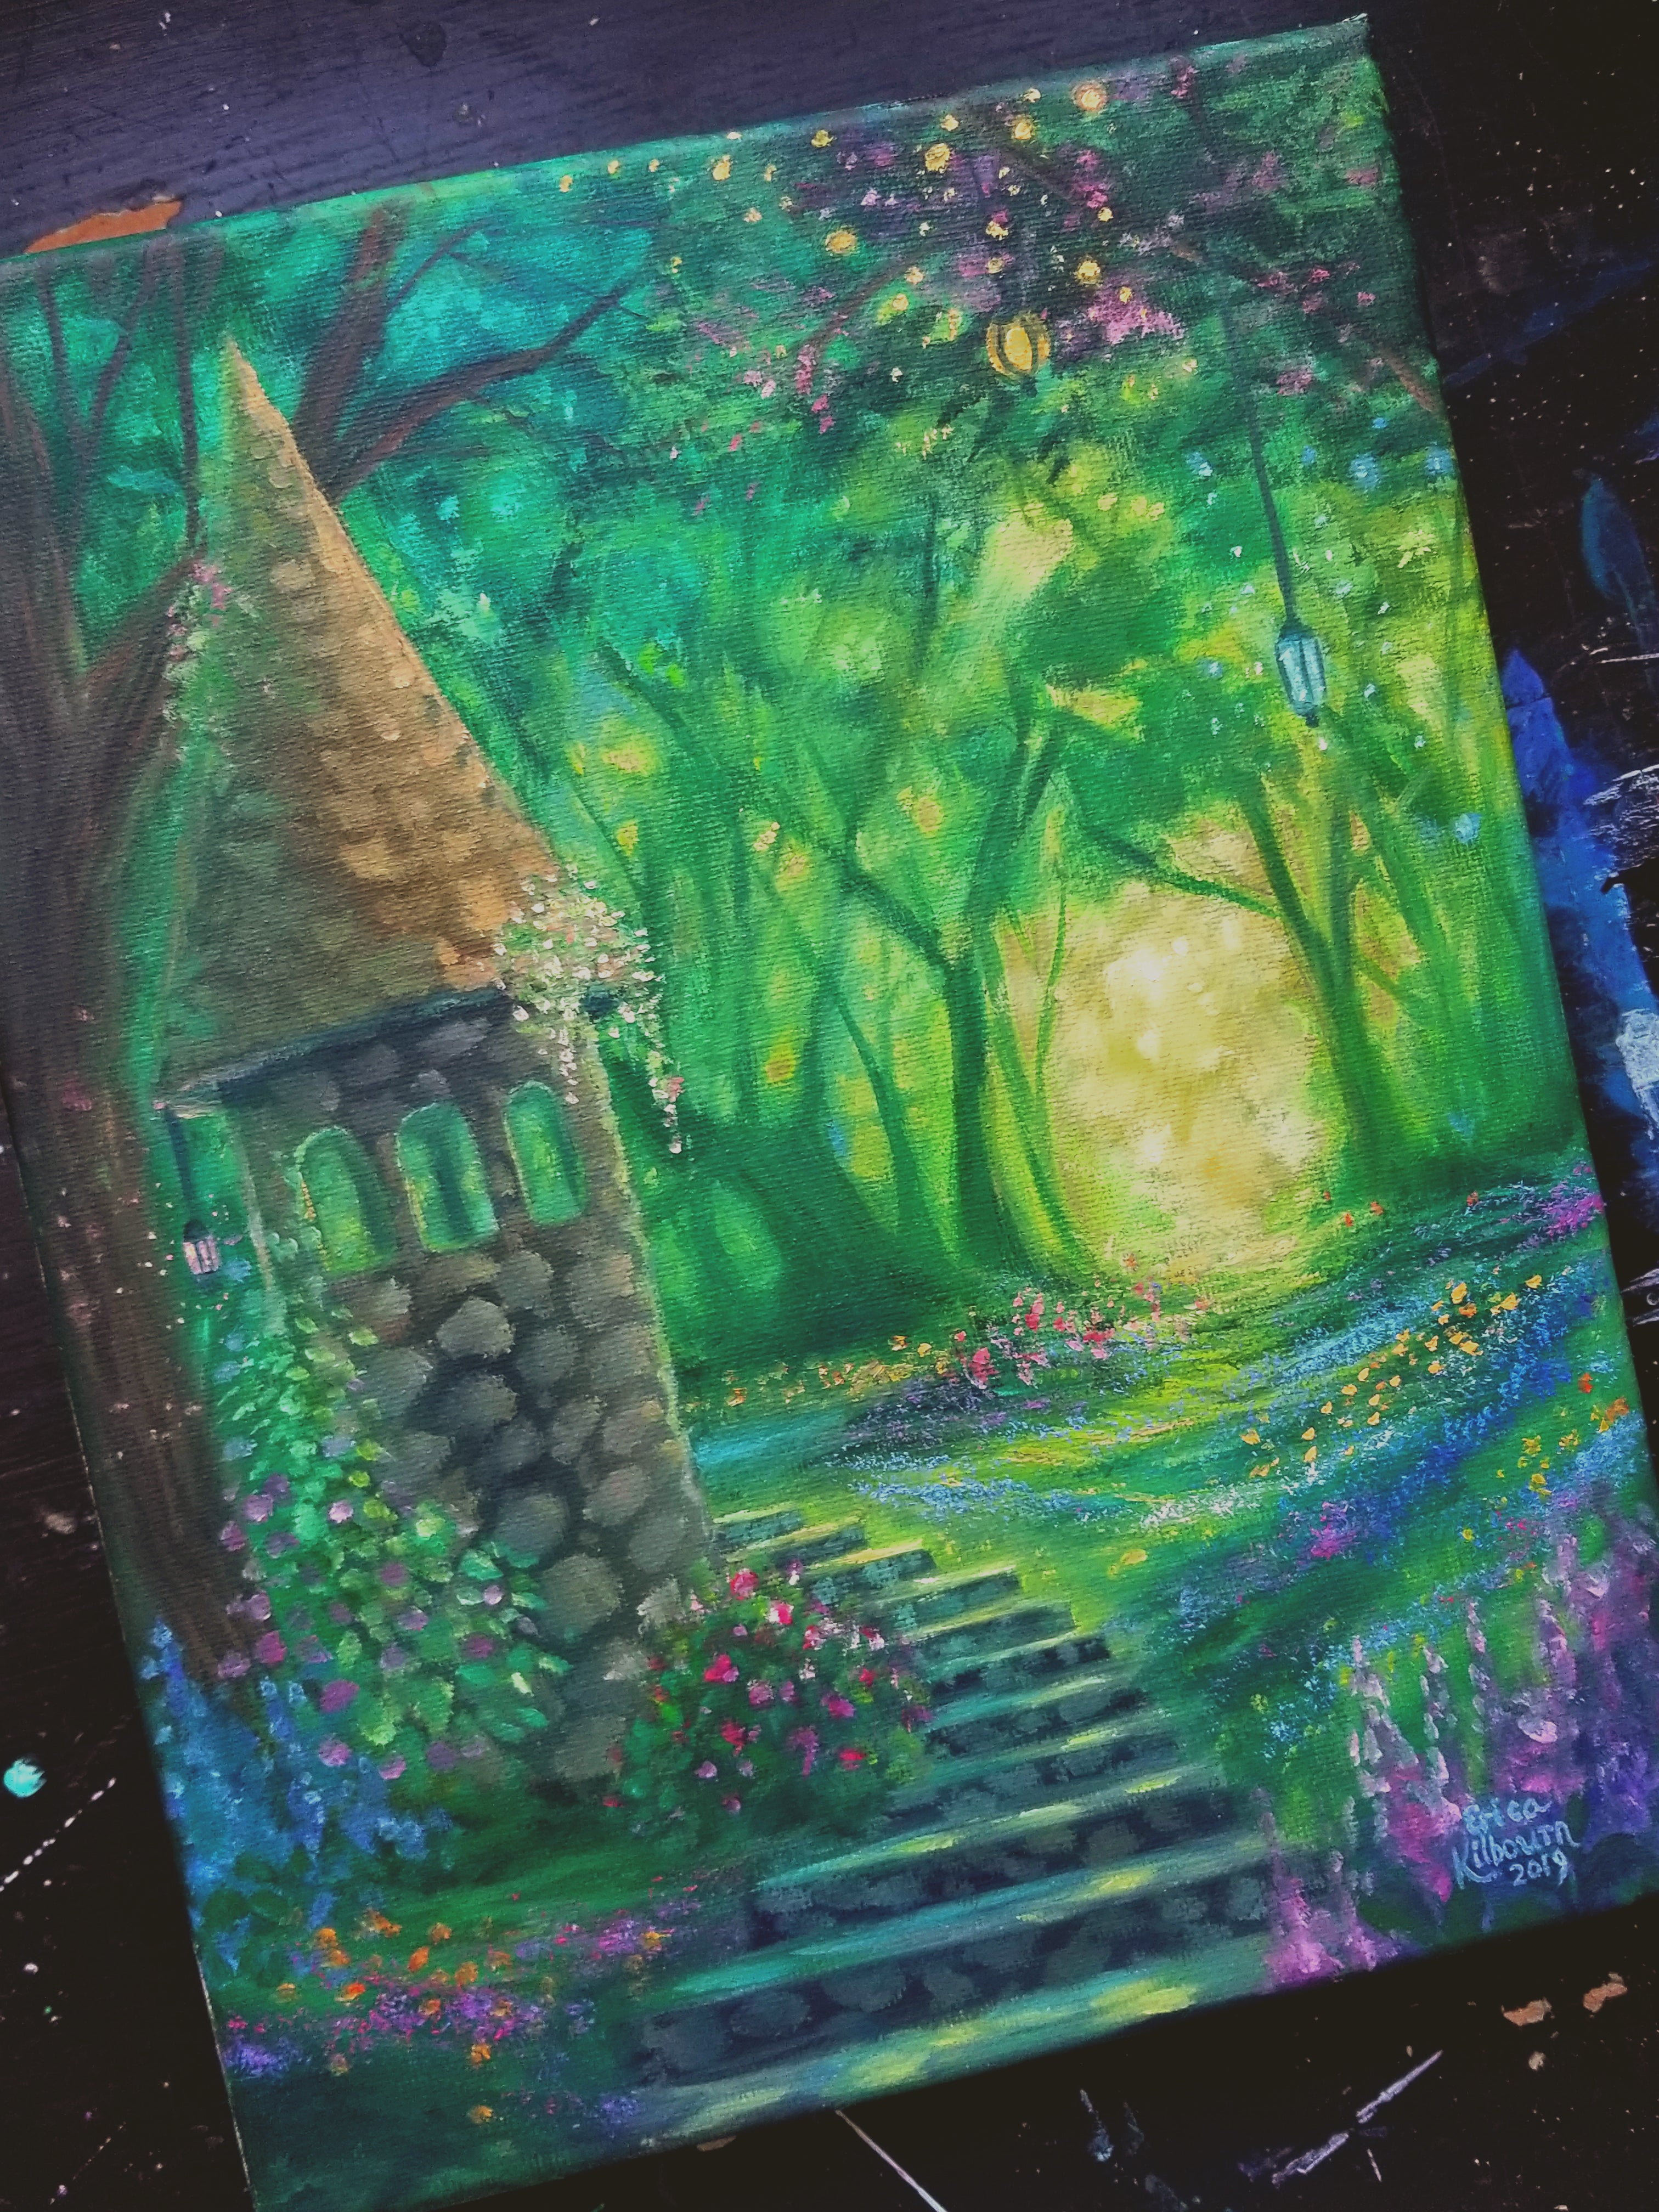 "Light of the Forest || 8x10"" Original Oil Painting of a Fantasy Garden Scene"